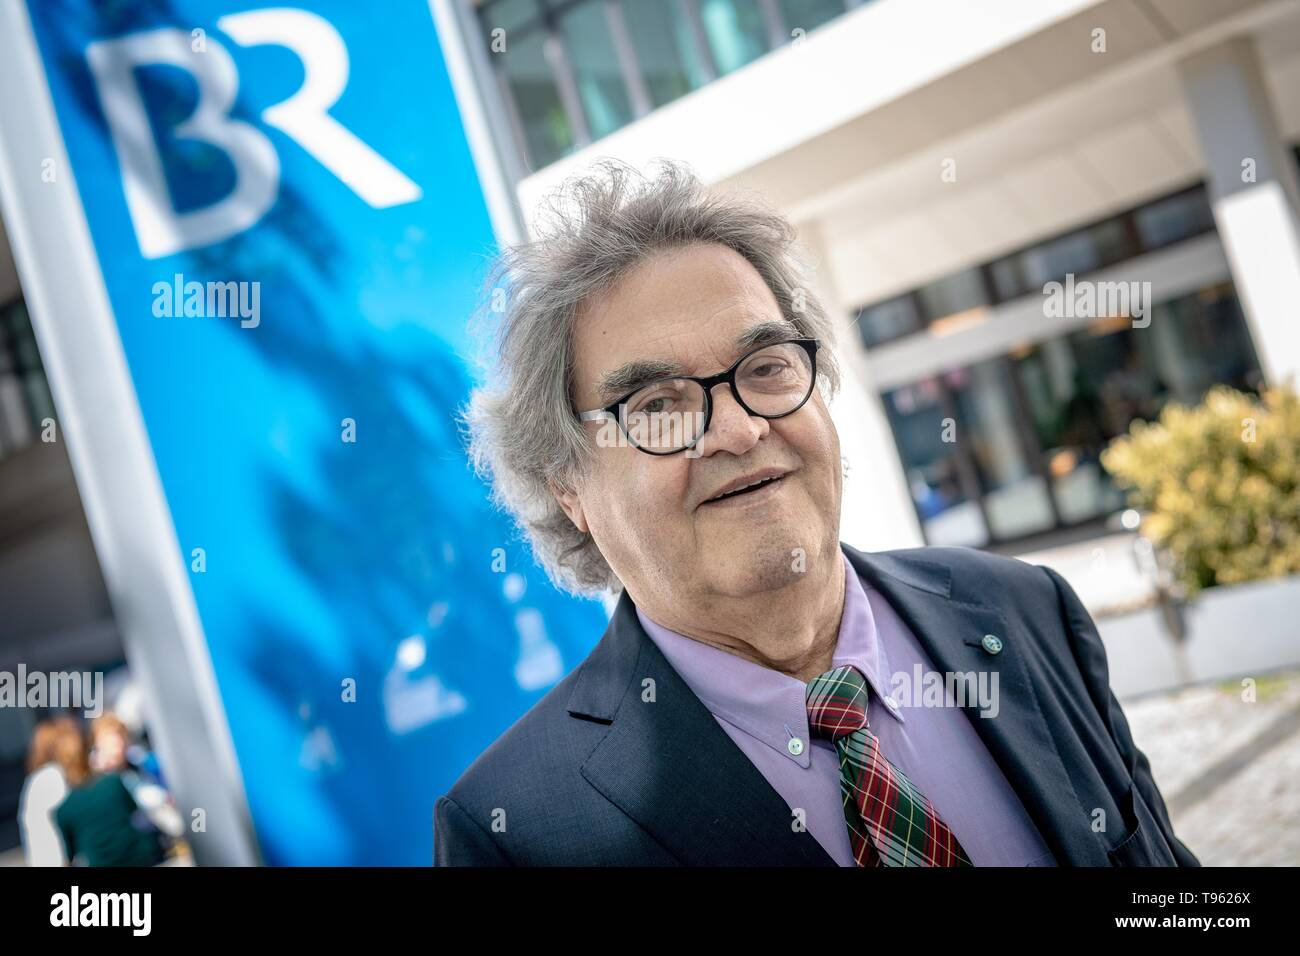 Munich, Germany. 17th May, 2019. Helmut Markwort (FDP), member of the state parliament, stands in front of the building of the Bayerischer Rundfunk (BR). He is actually named by the Landtag as one of twelve politicians for the supervisory board of Bayerischer Rundfunk (BR). But the Broadcasting Council had rejected the media entrepreneur as a new member after the state elections - among other things because of possible conflicts of interest due to Markwort's shareholdings and business activities with private radio stations. Credit: Sina Schuldt/dpa/Alamy Live News - Stock Image